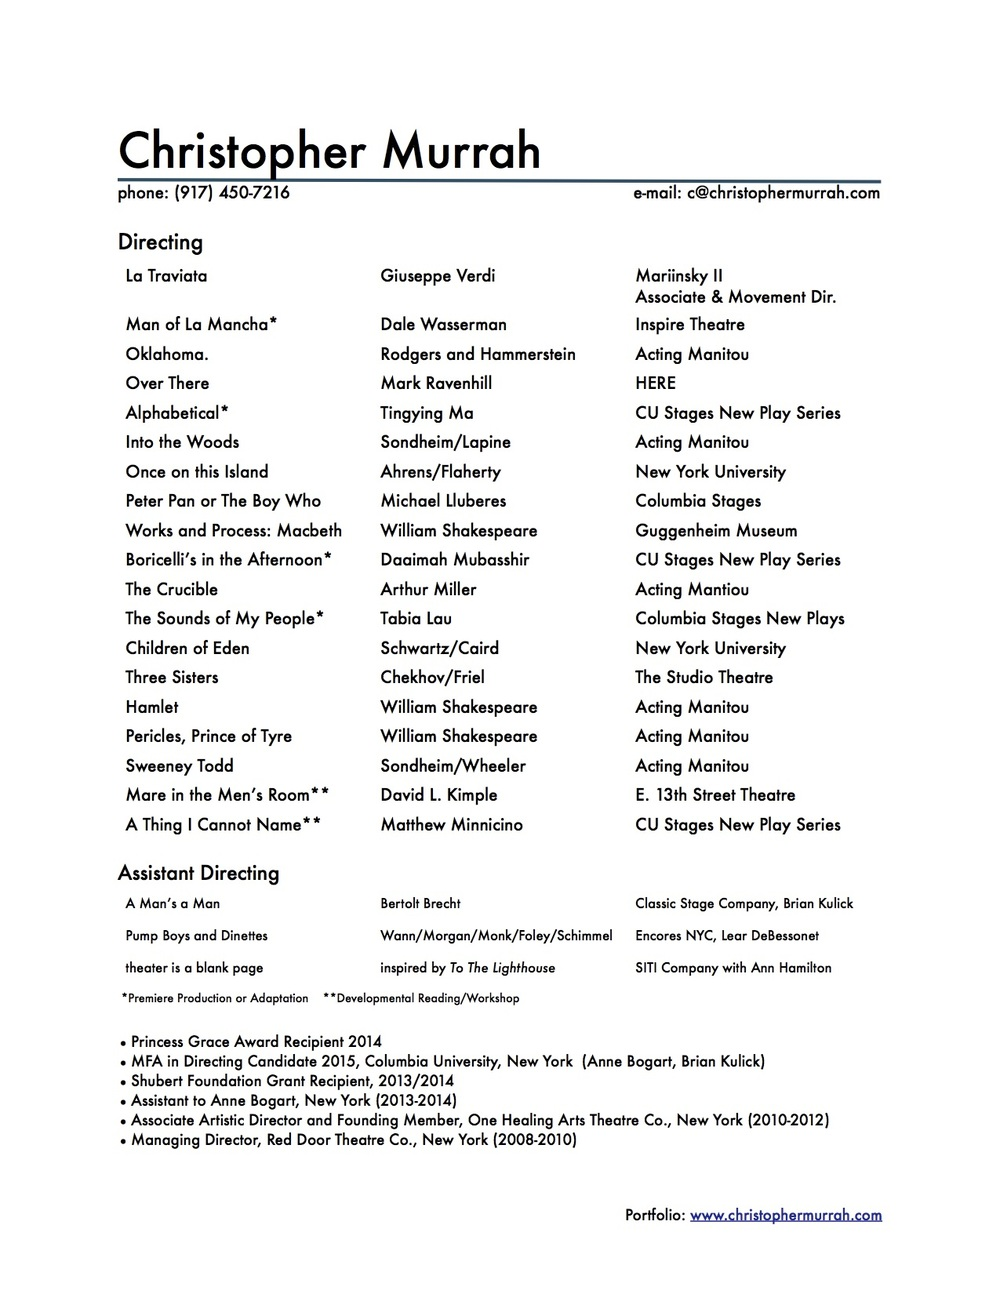 Christopher Murrah Director Resume.jpg